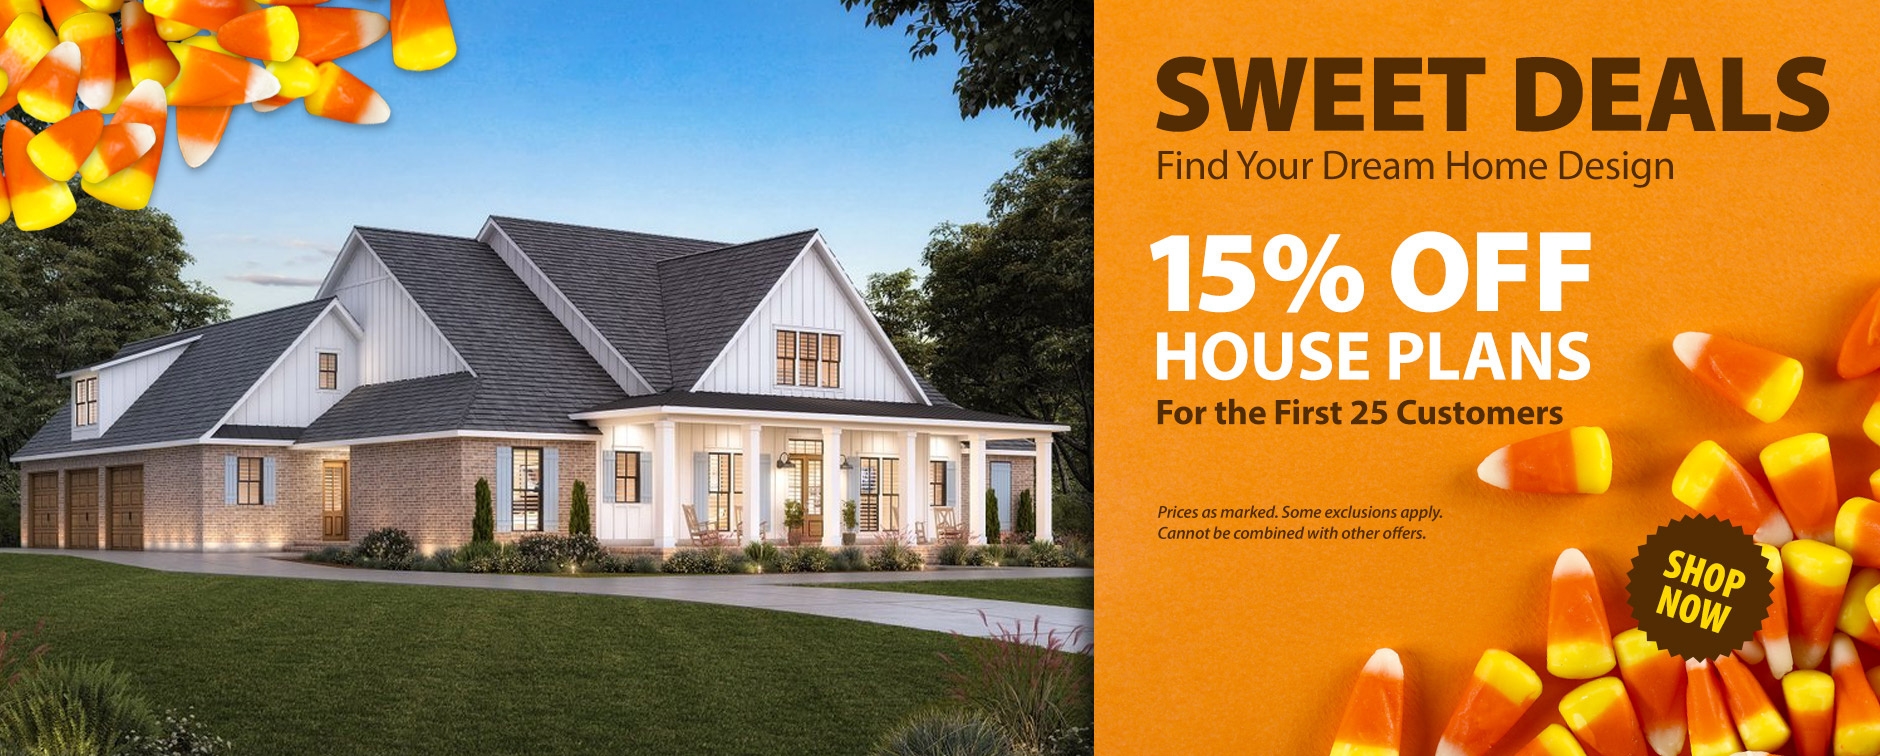 15% Off Thousands of Dream House Plans Today